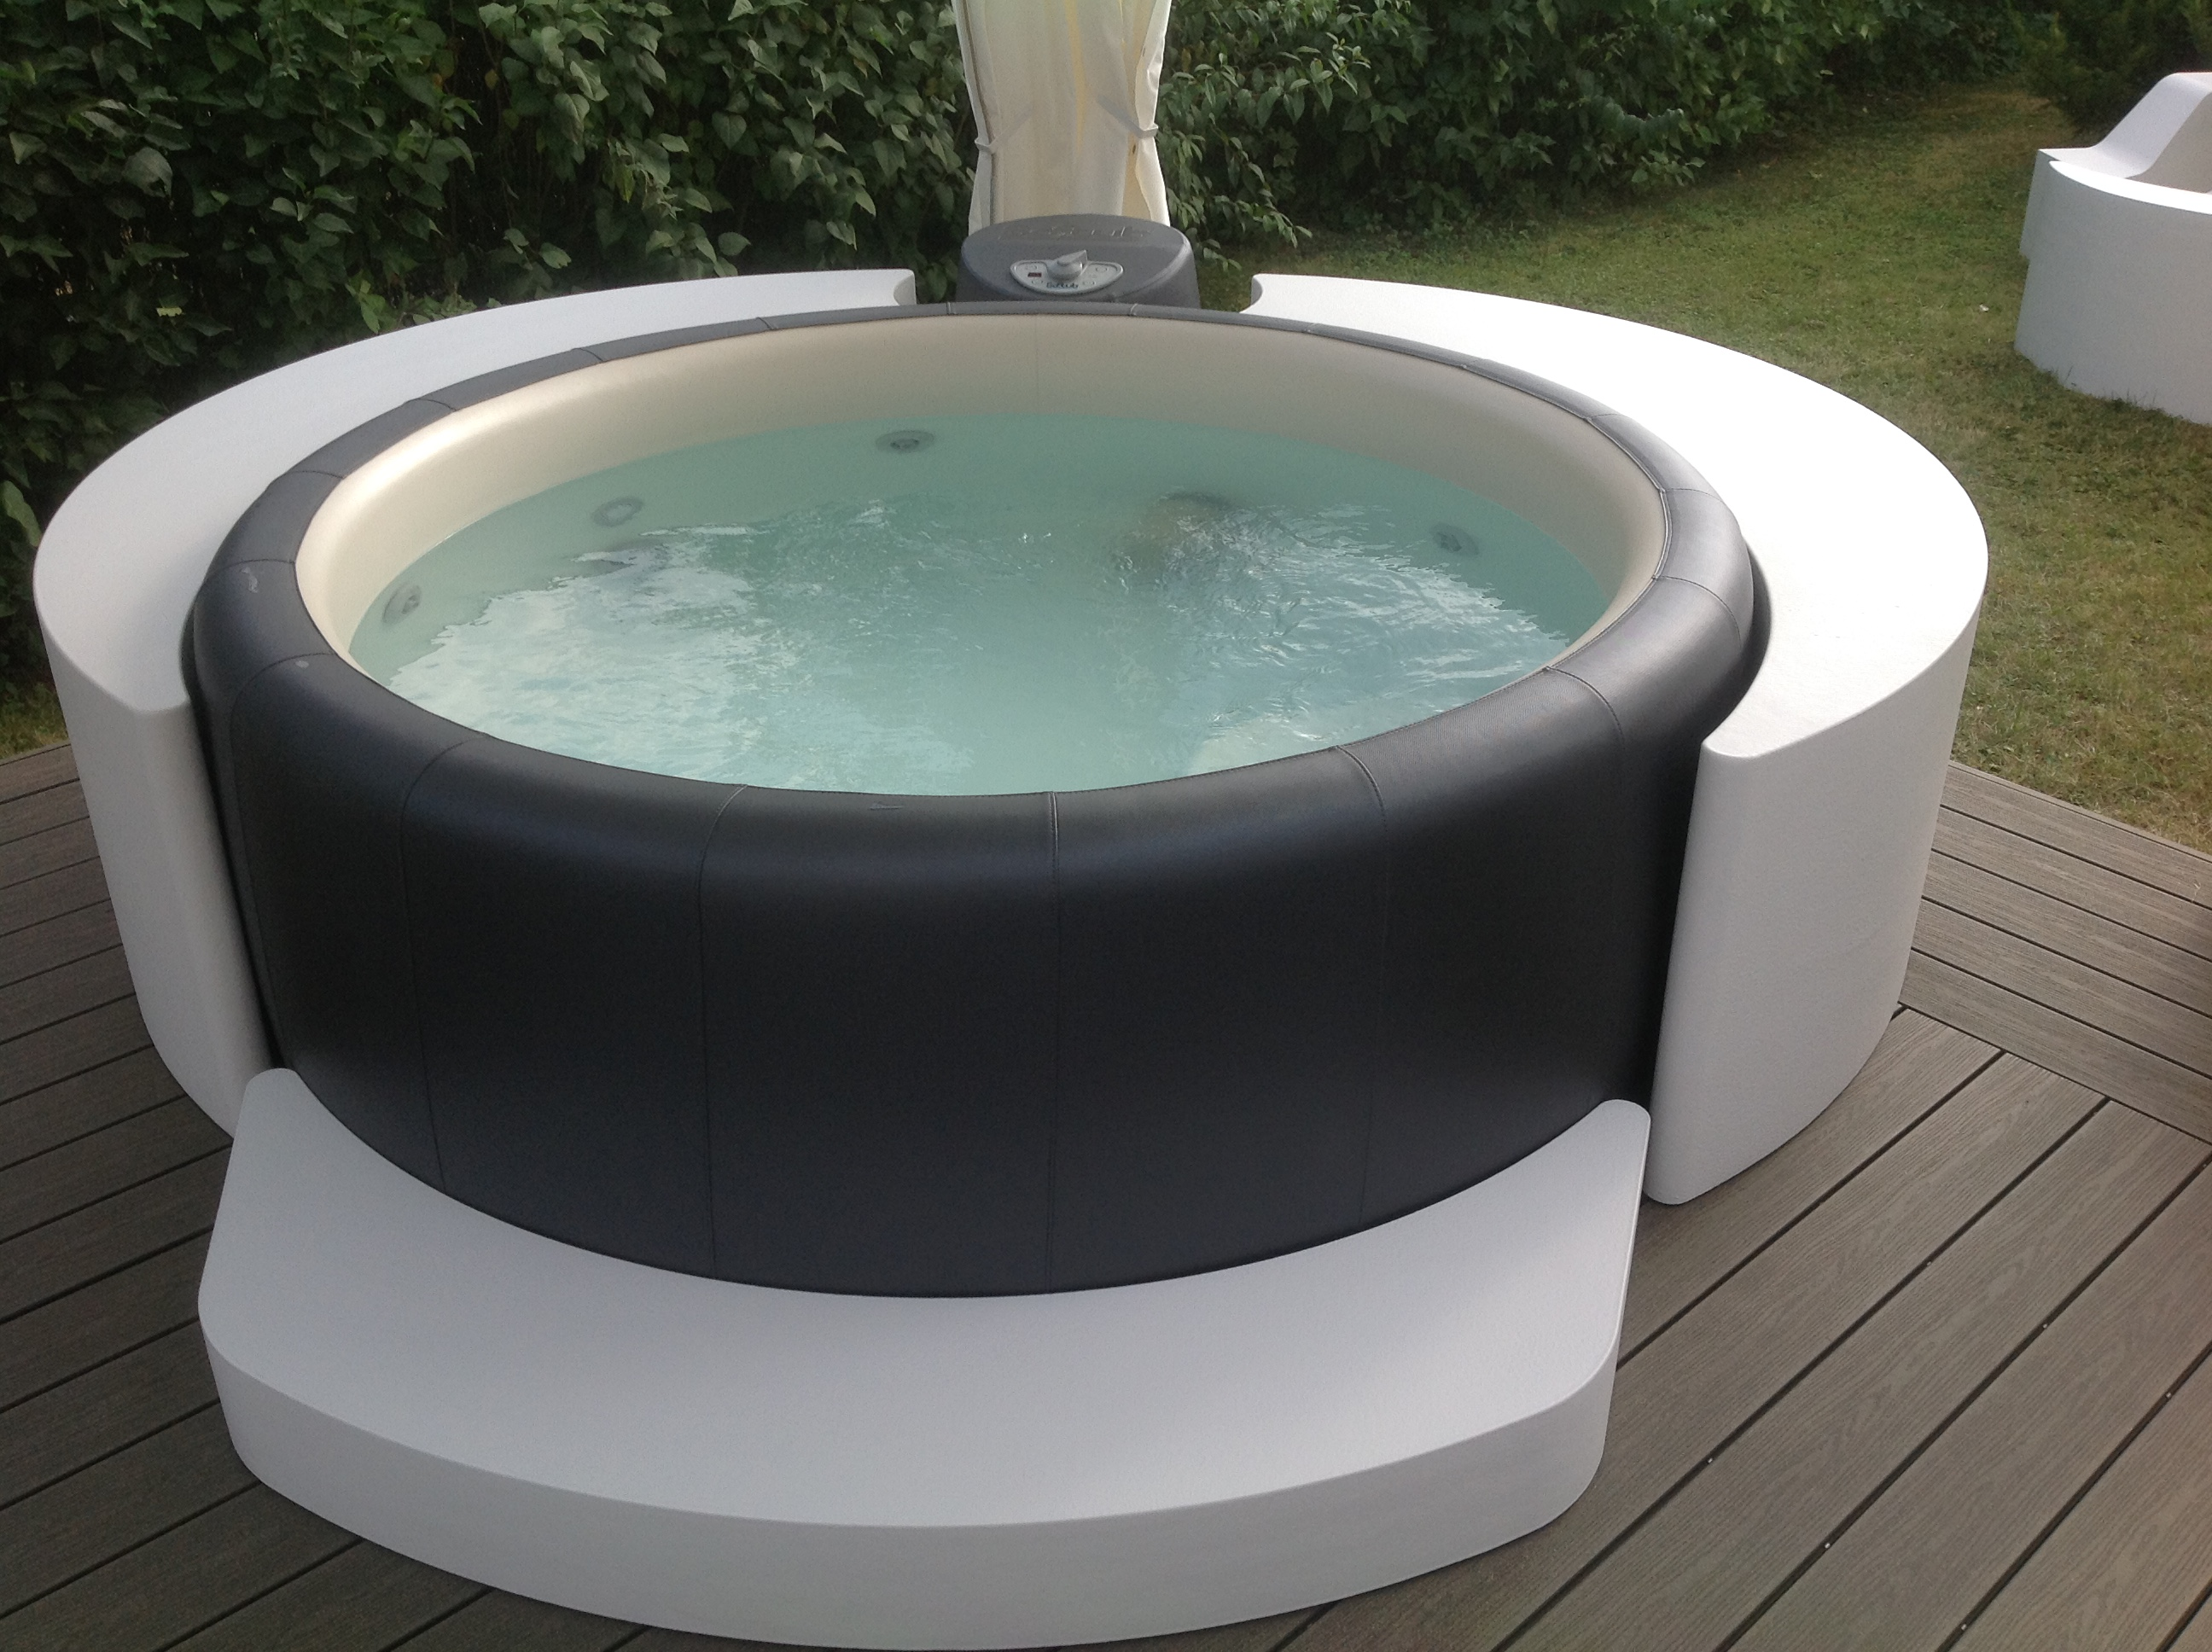 Softub Whirlpool Erfahrungen Www Softub De Softub Is De Ideale Hot Tub Voor Je Achtertuin Die